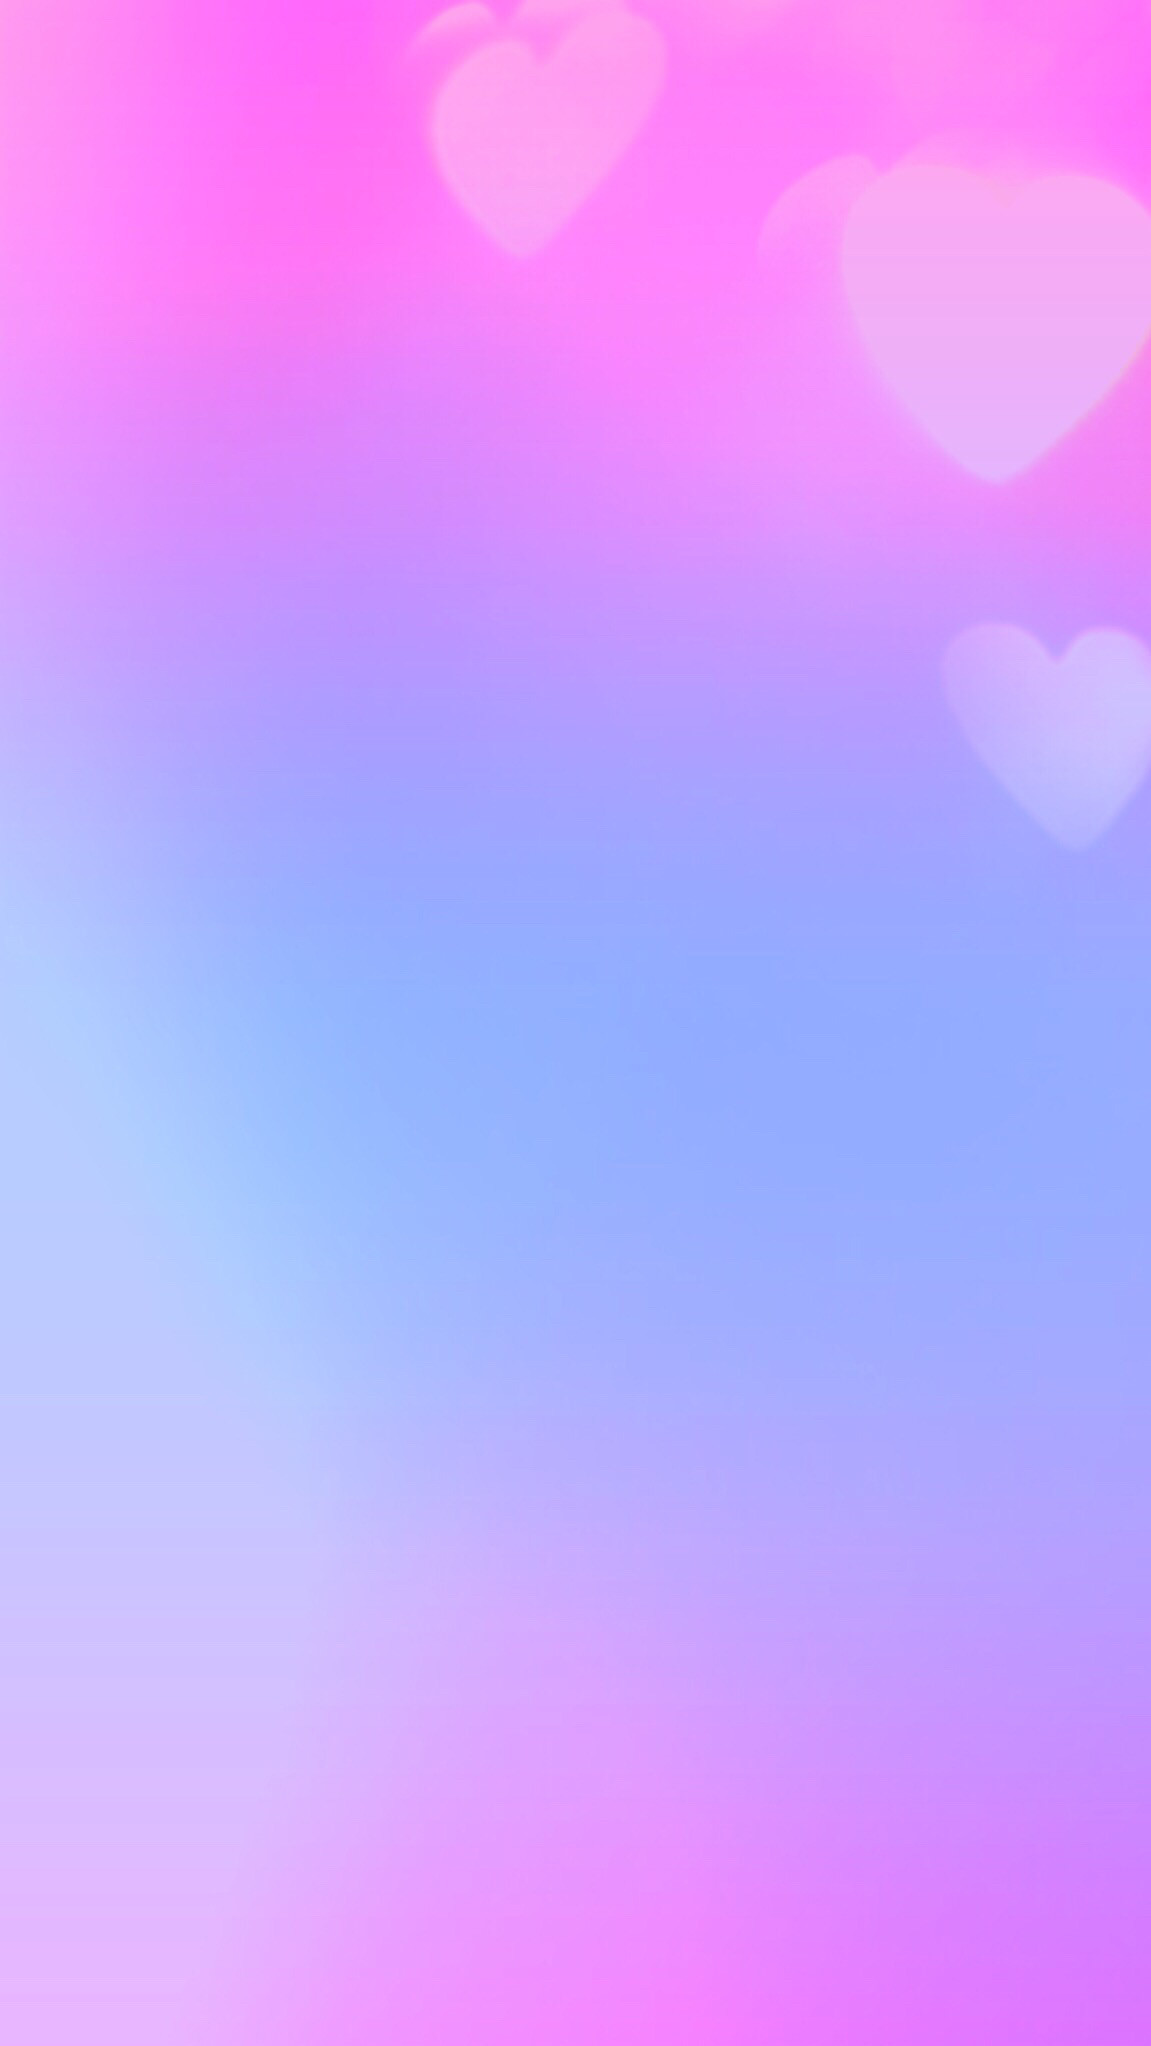 Pink Ombre Wallpaper 60 images 1151x2046